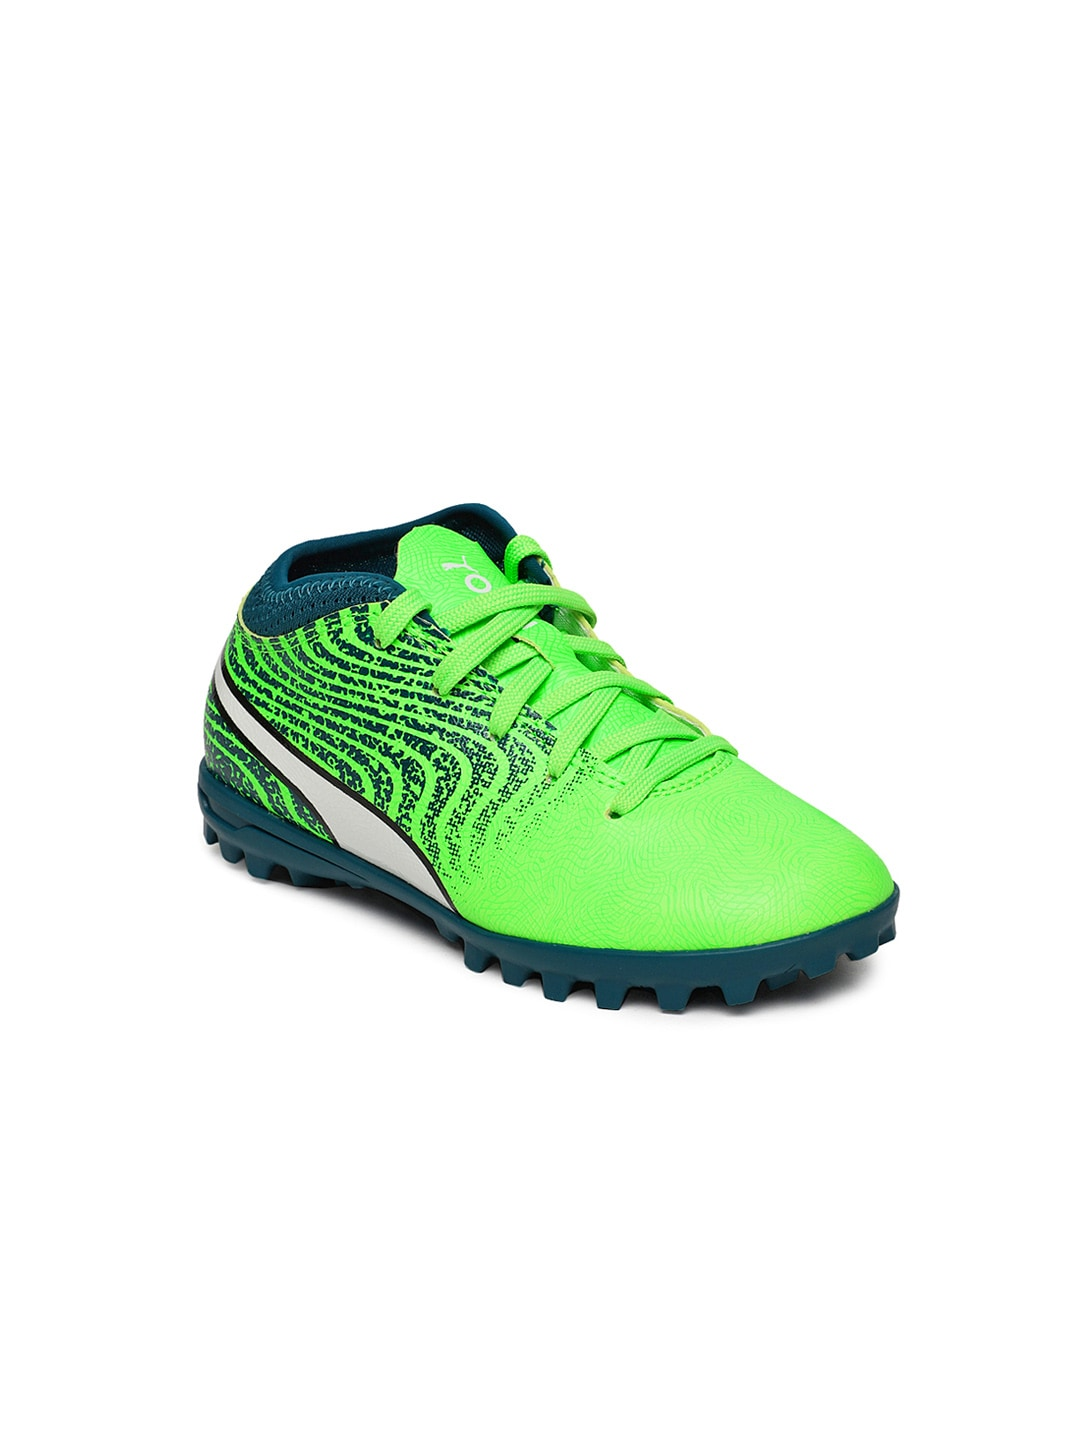 6454735f74c Boys Sports Shoes - Buy Sports Shoes For Kids Online in India